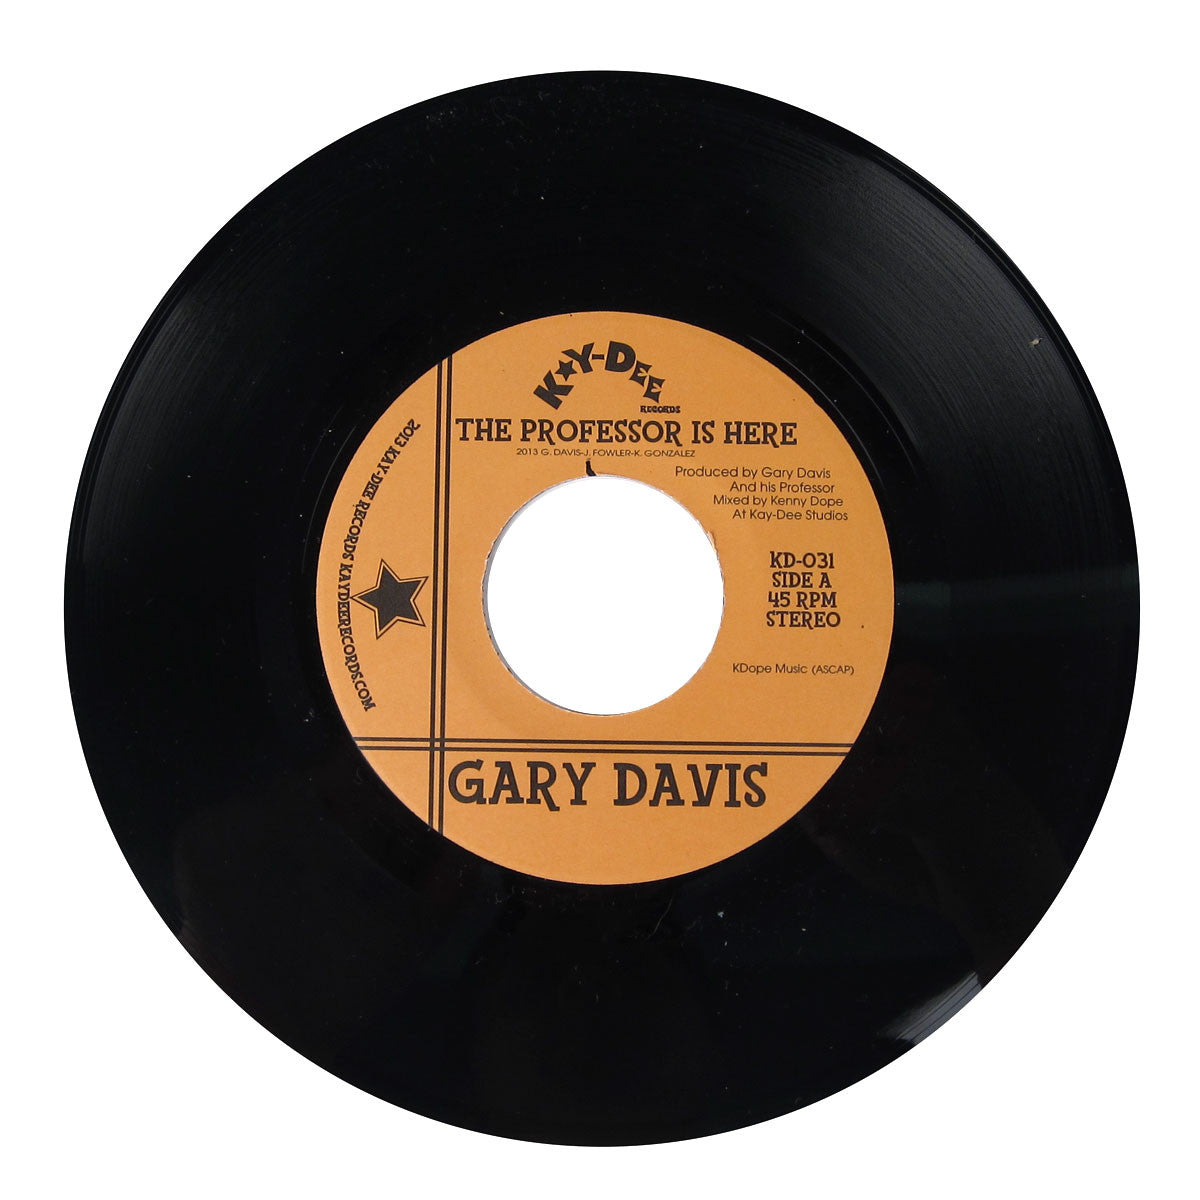 Gary Davis: The Professor Is Here / The Pop Vinyl (Kenny Dope Mix) 7""